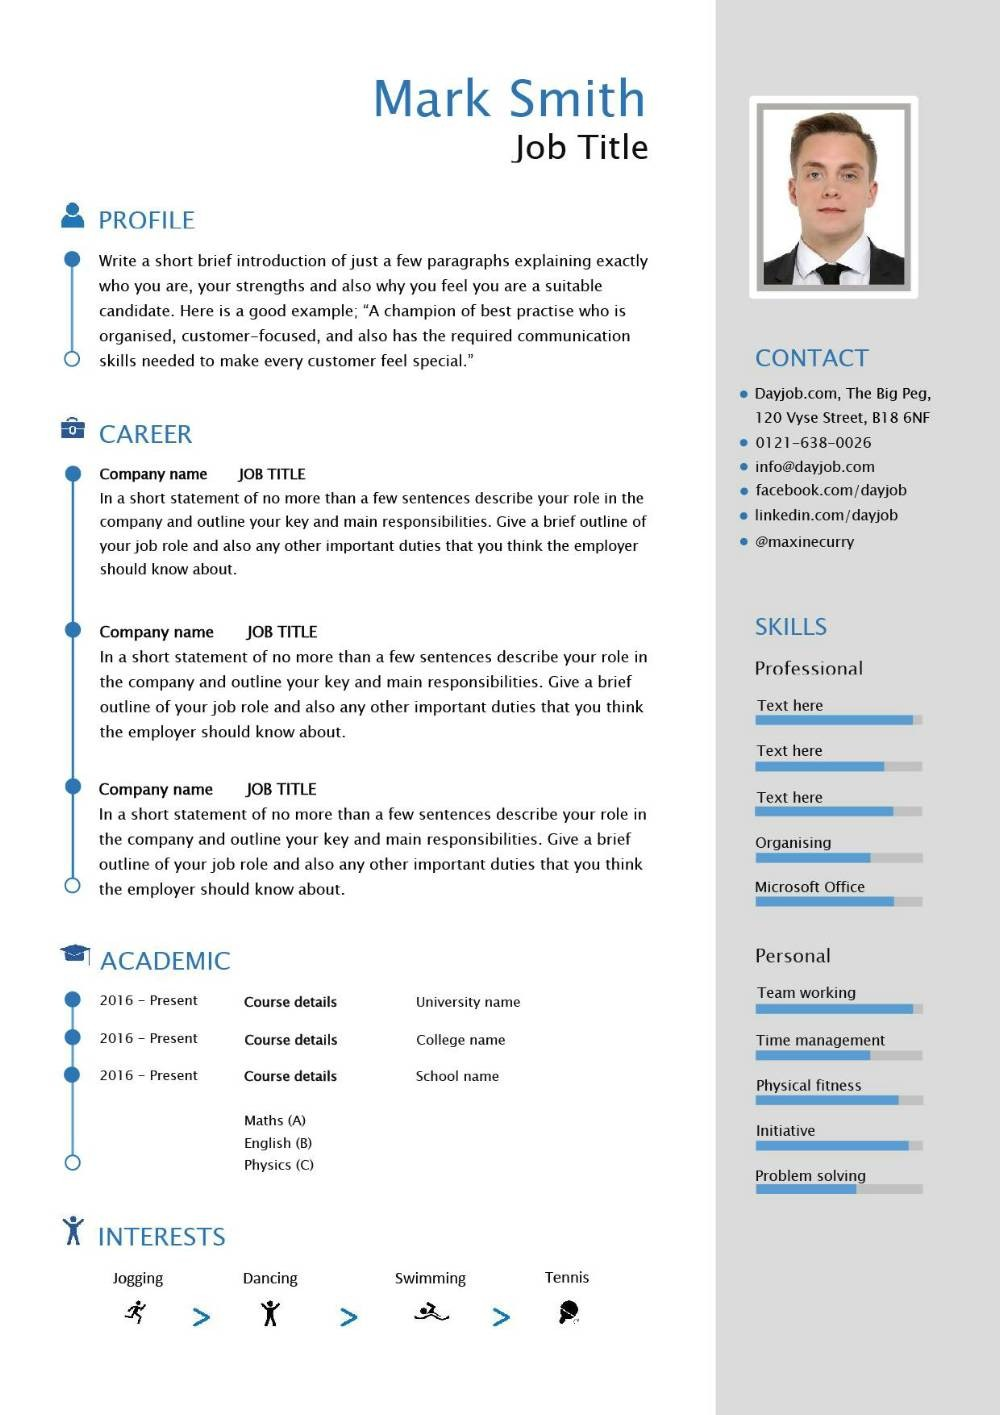 resume template uk  Interview winning CVs, Resumes and cover letters - resume template uk